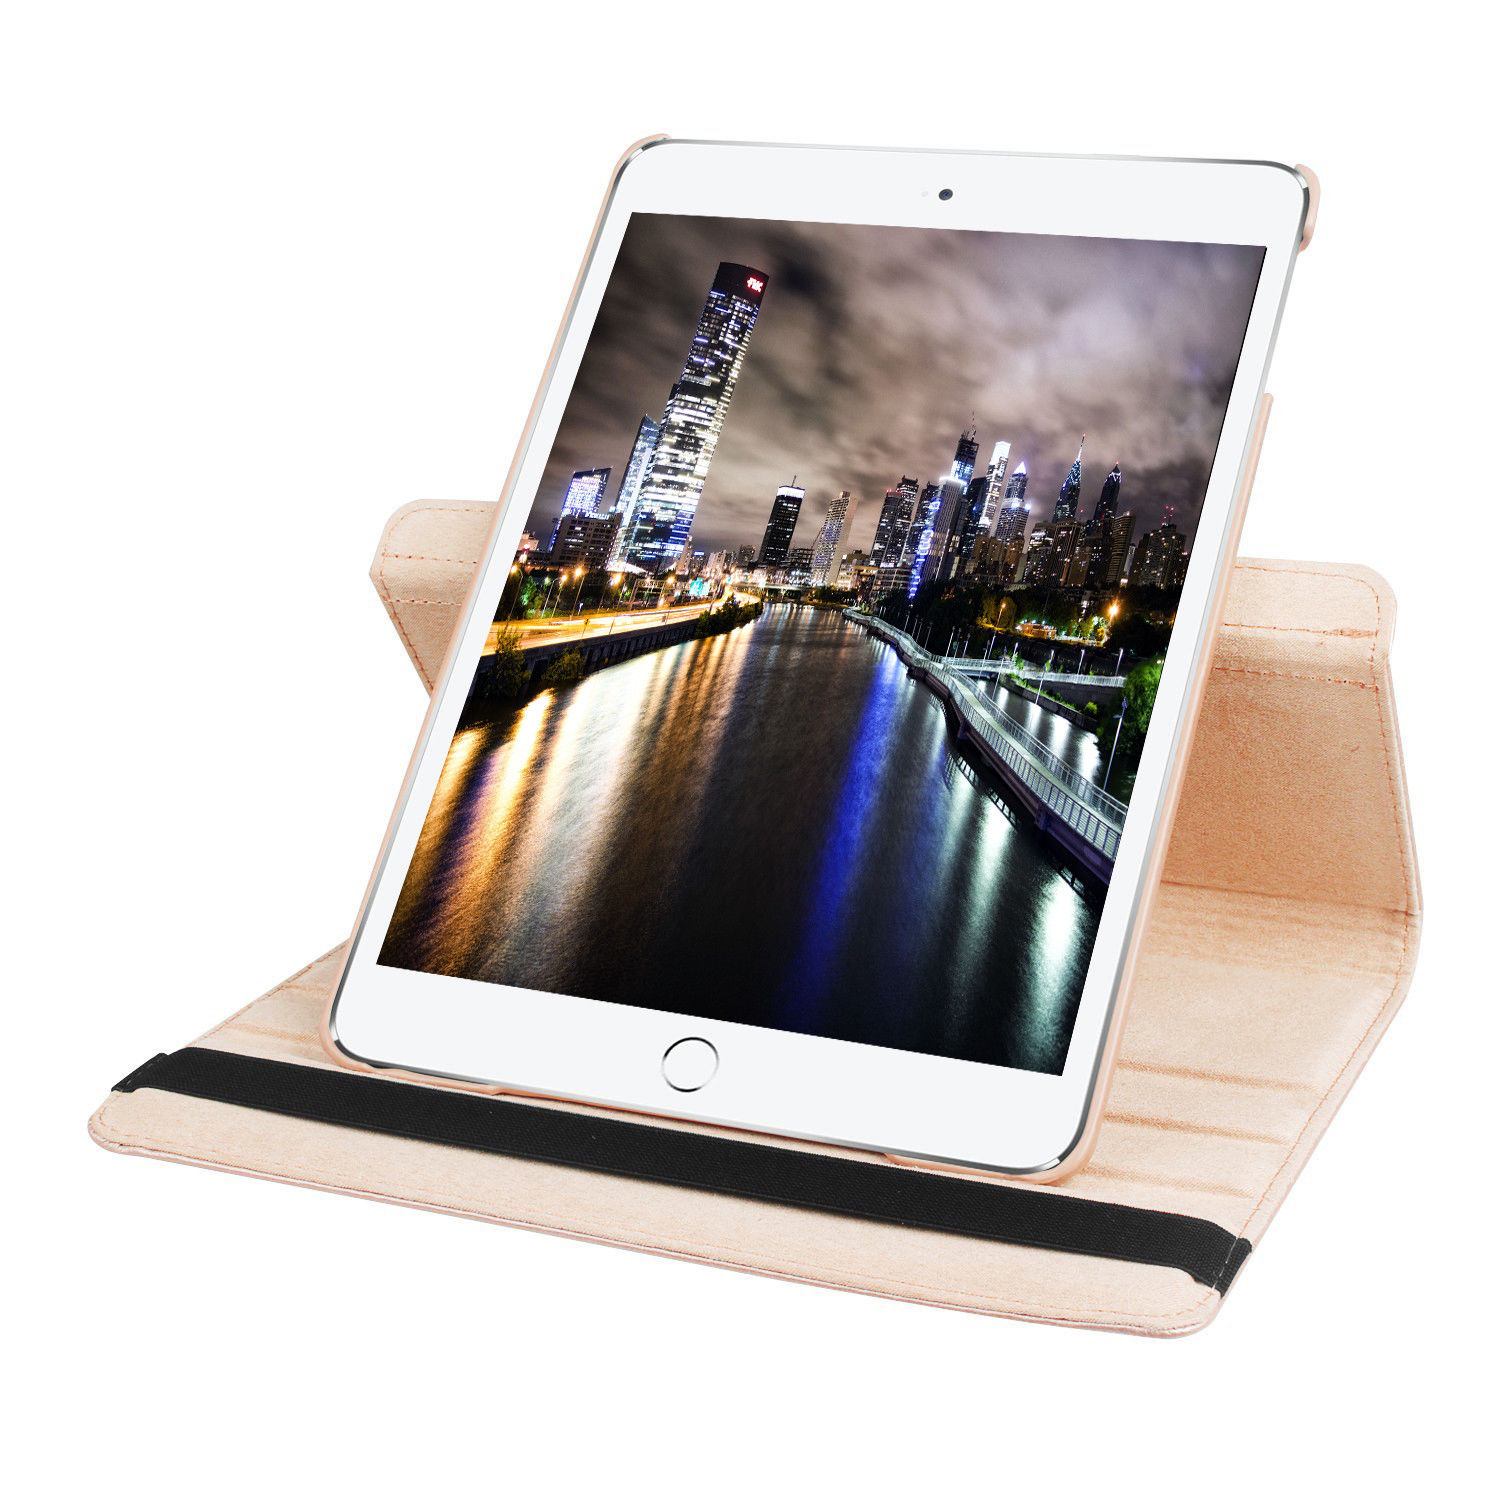 Custodia-per-Apple-iPad-Pro-2017-iPad-Air-3-10-5-Smart-Cover-Case-Custodia-Protettiva miniatura 96